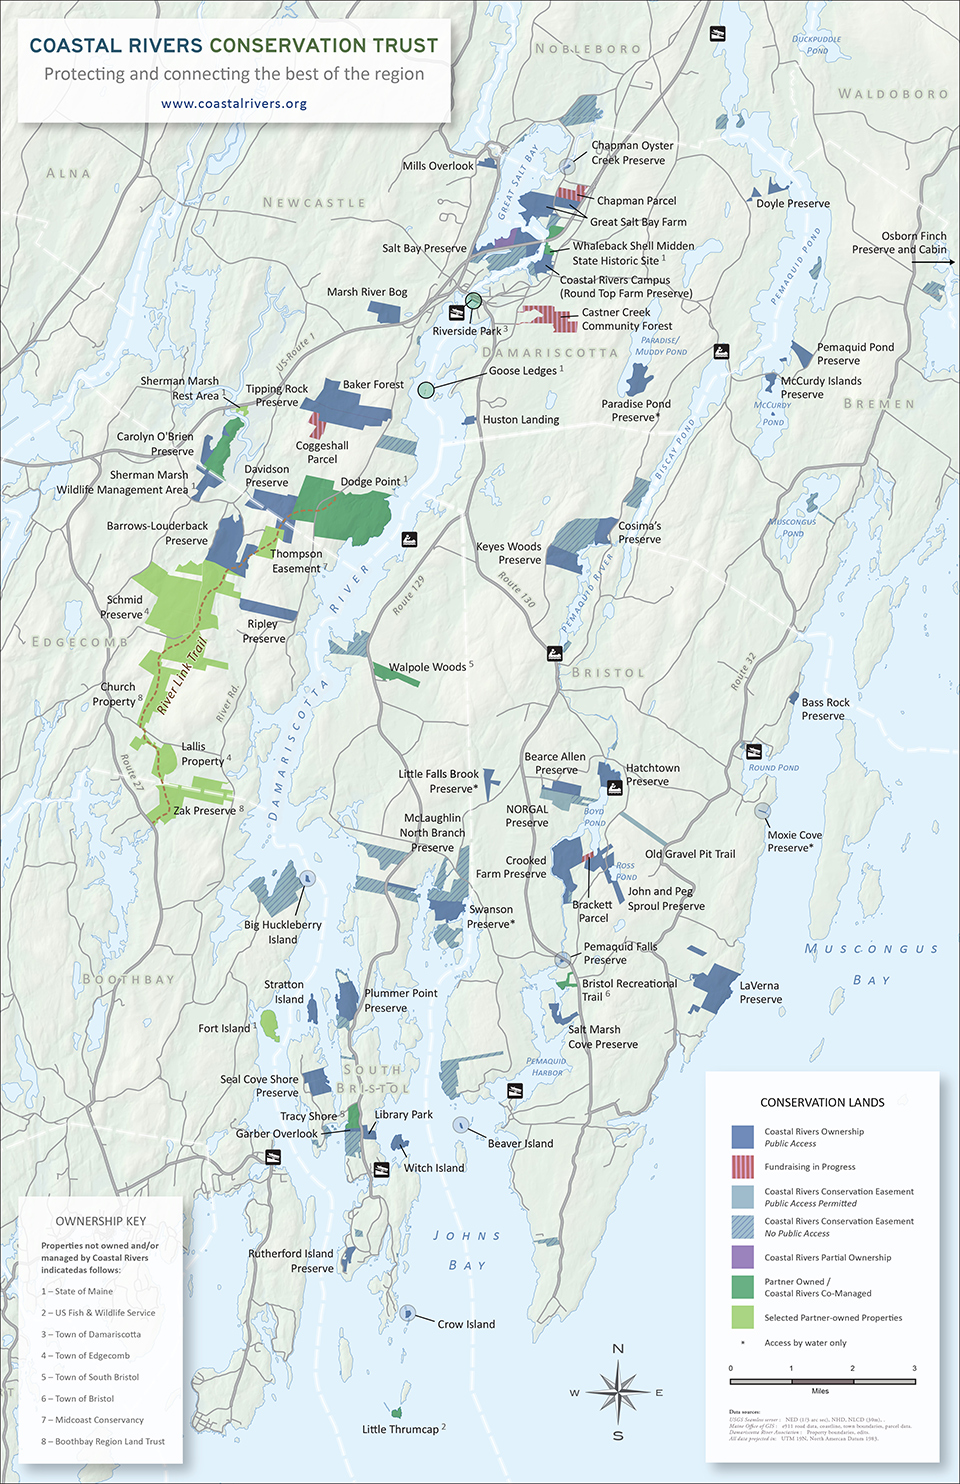 Public Access Map – Coastal Rivers Conservation Trust on map of wilton maine, map of maine regions, map of ogunquit maine, map of houlton maine, map of bethel maine, map of newport maine, map of maine state parks, map of belfast maine, map of harrison maine, map of mount desert island maine, map of biddeford maine, map of kittery maine, map of mountains in maine, map of camden maine, map of maine coast, map of caribou maine, map of augusta maine area, map all towns in maine, map of harpswell maine,